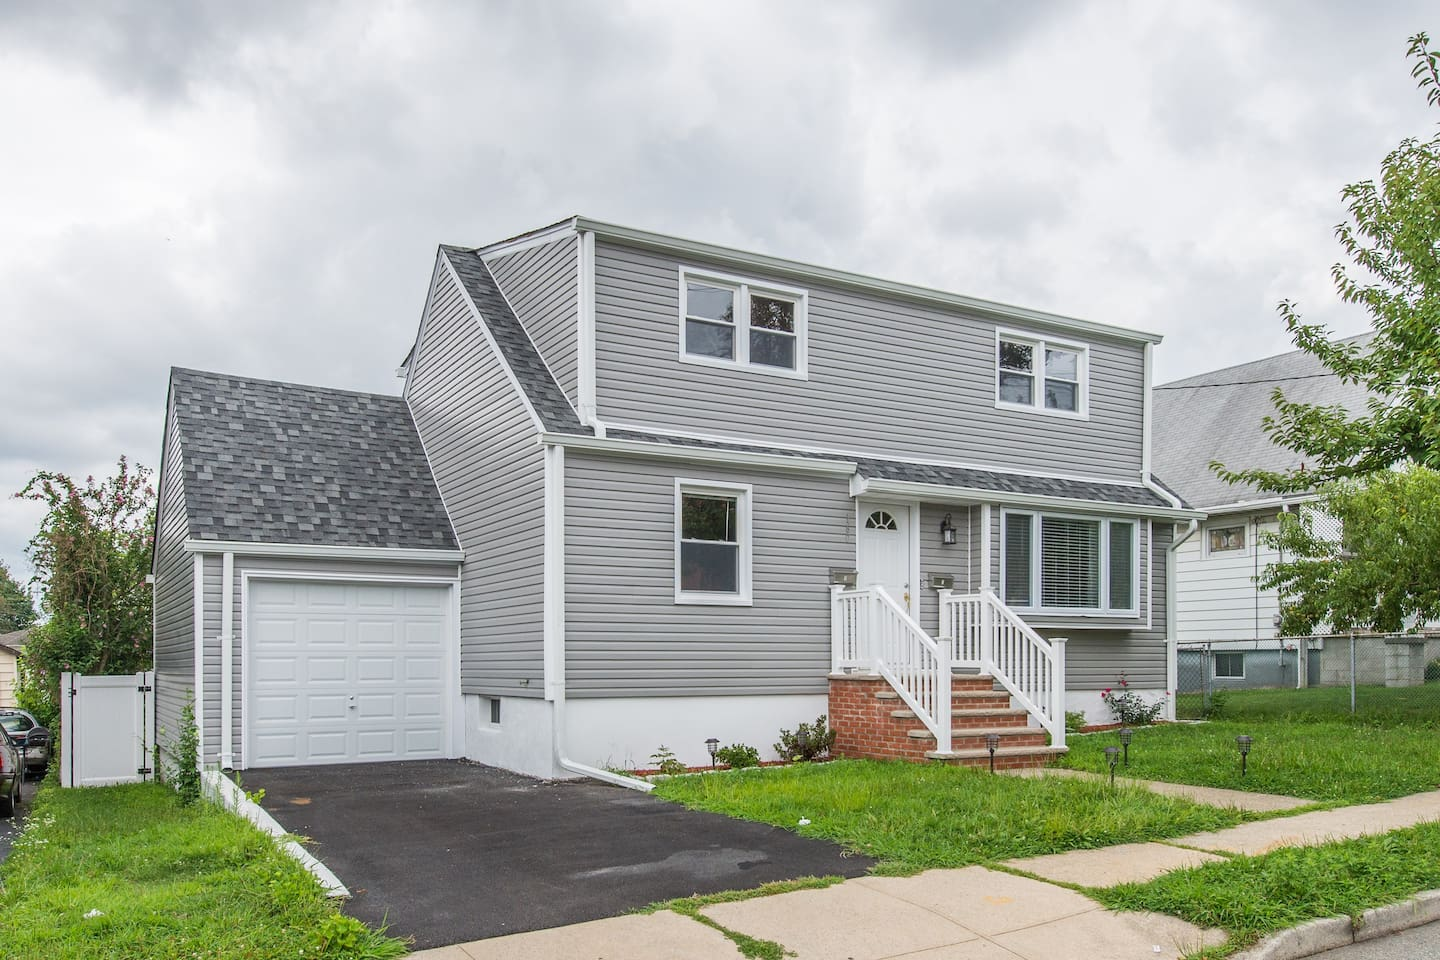 m m entire unit rental new york ny new jersey nj houses for rent